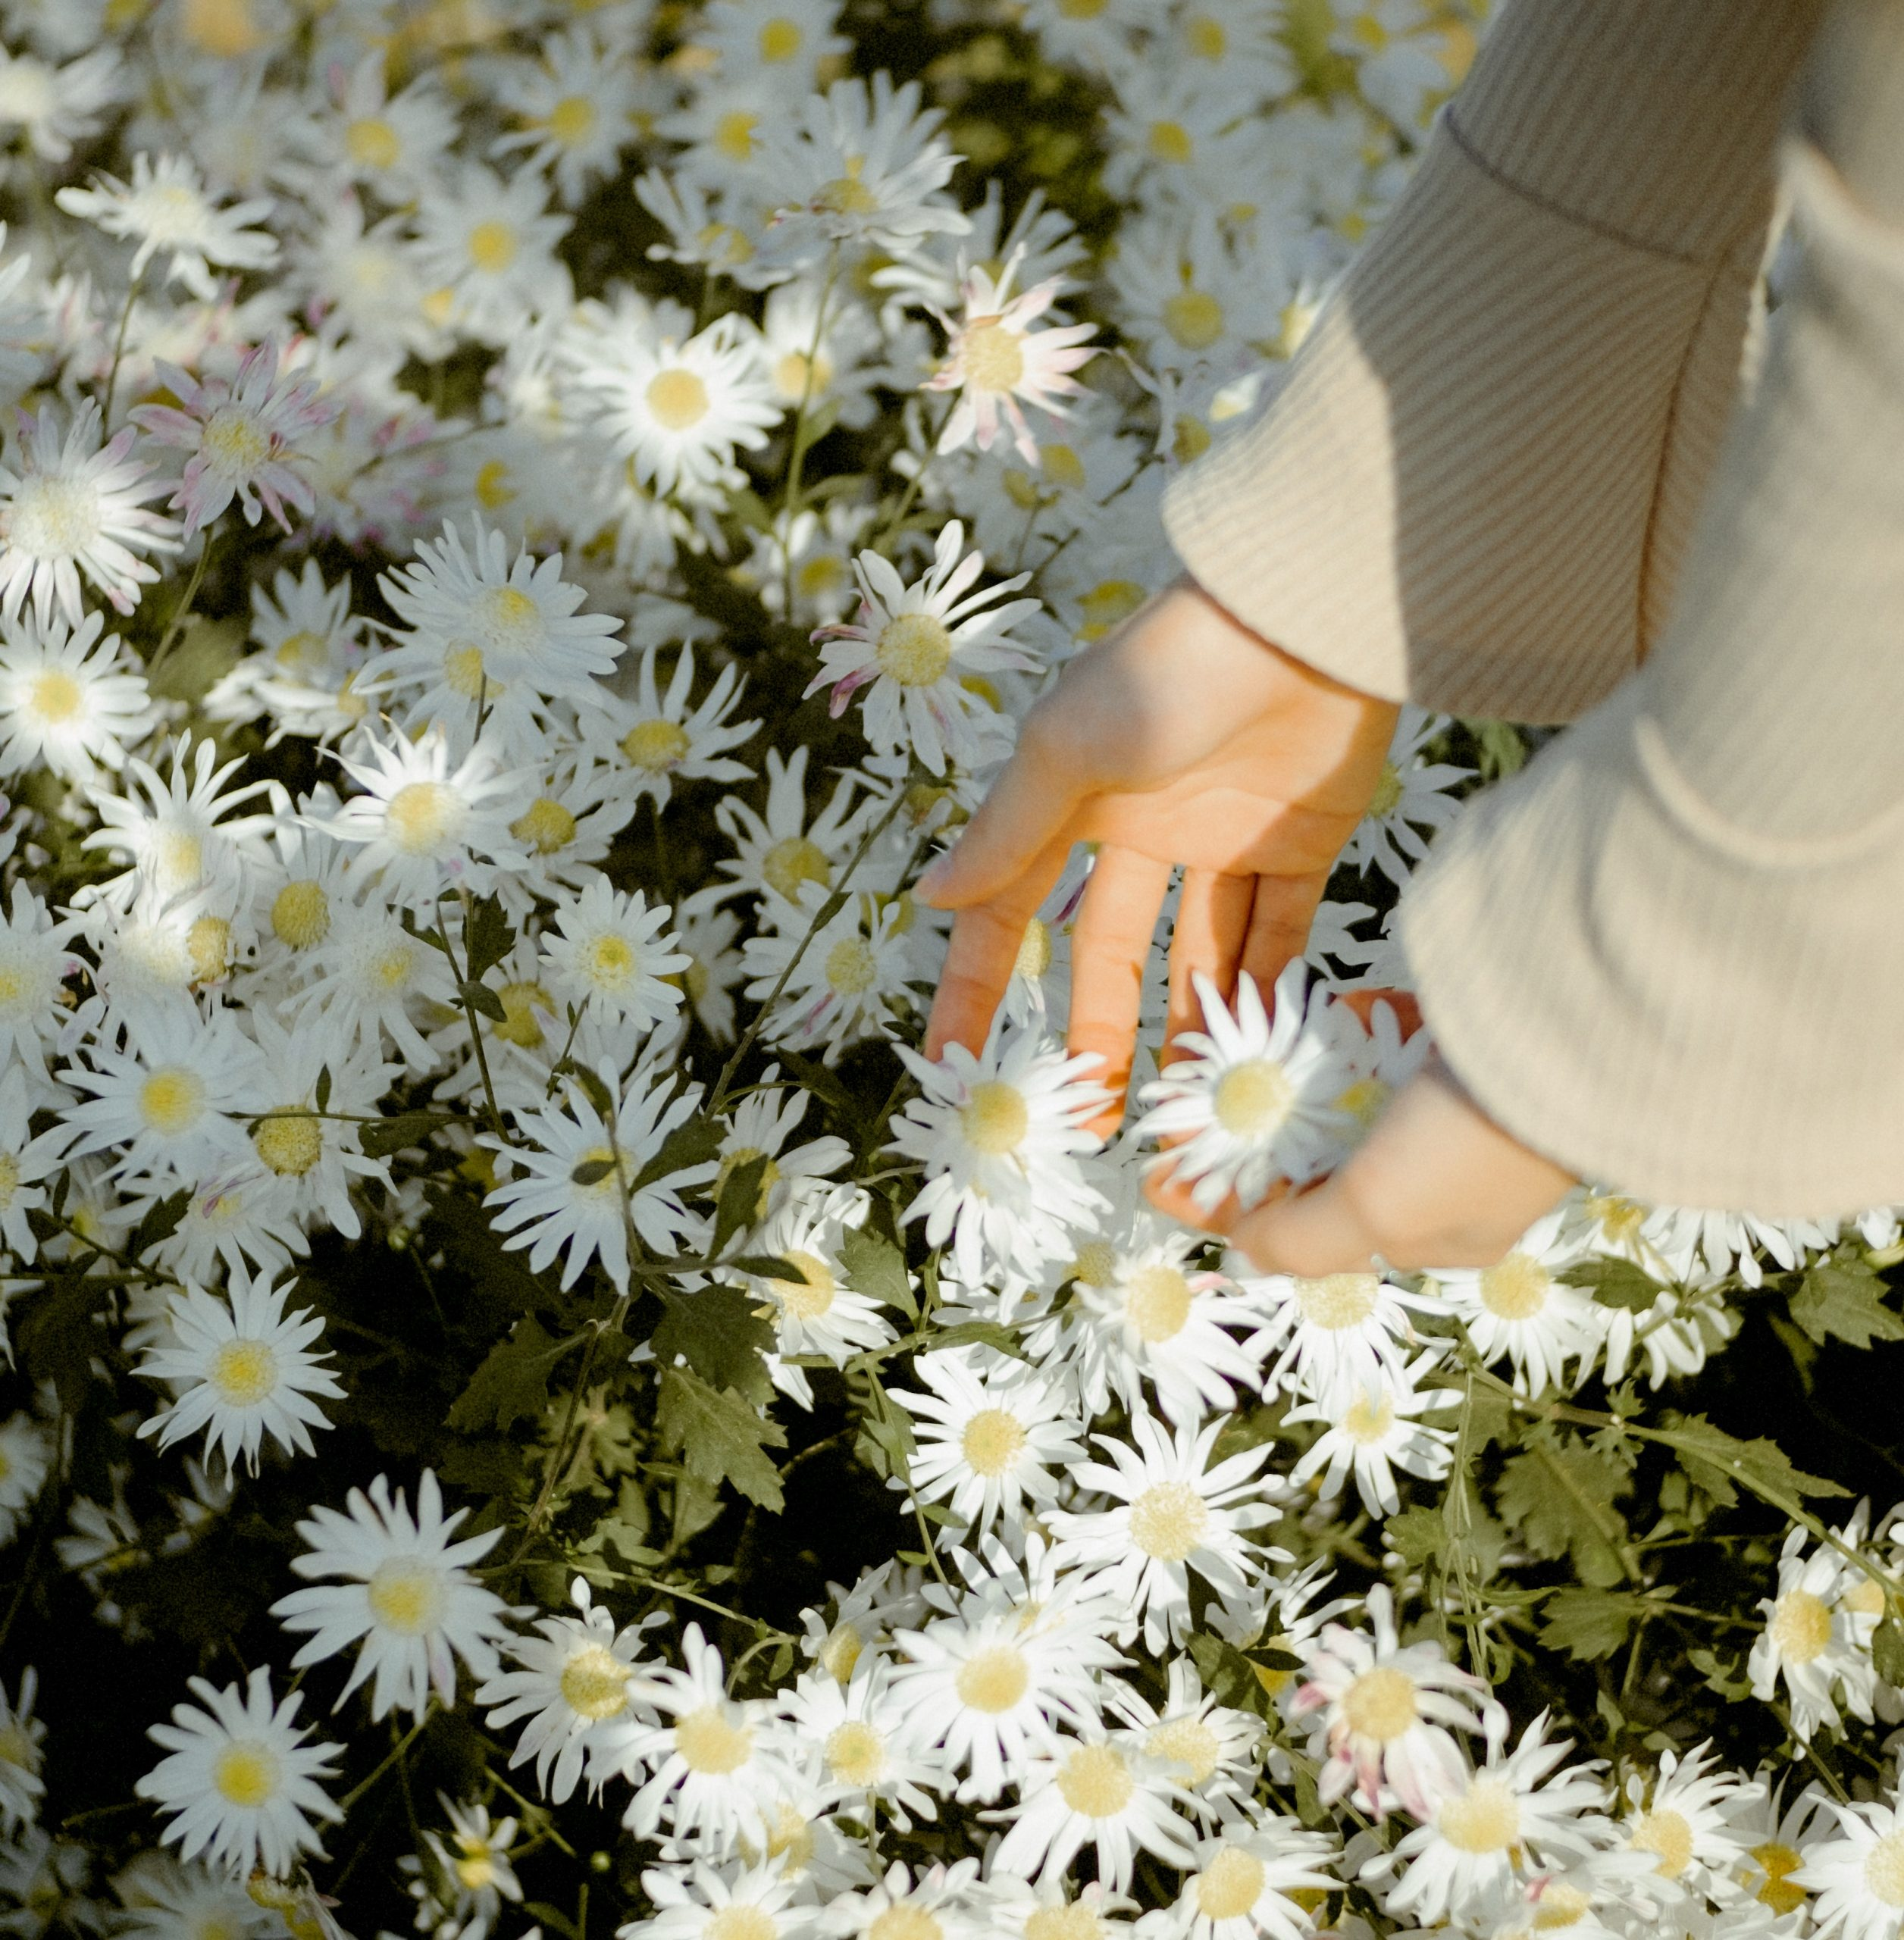 woman gathering white flowers from the garden